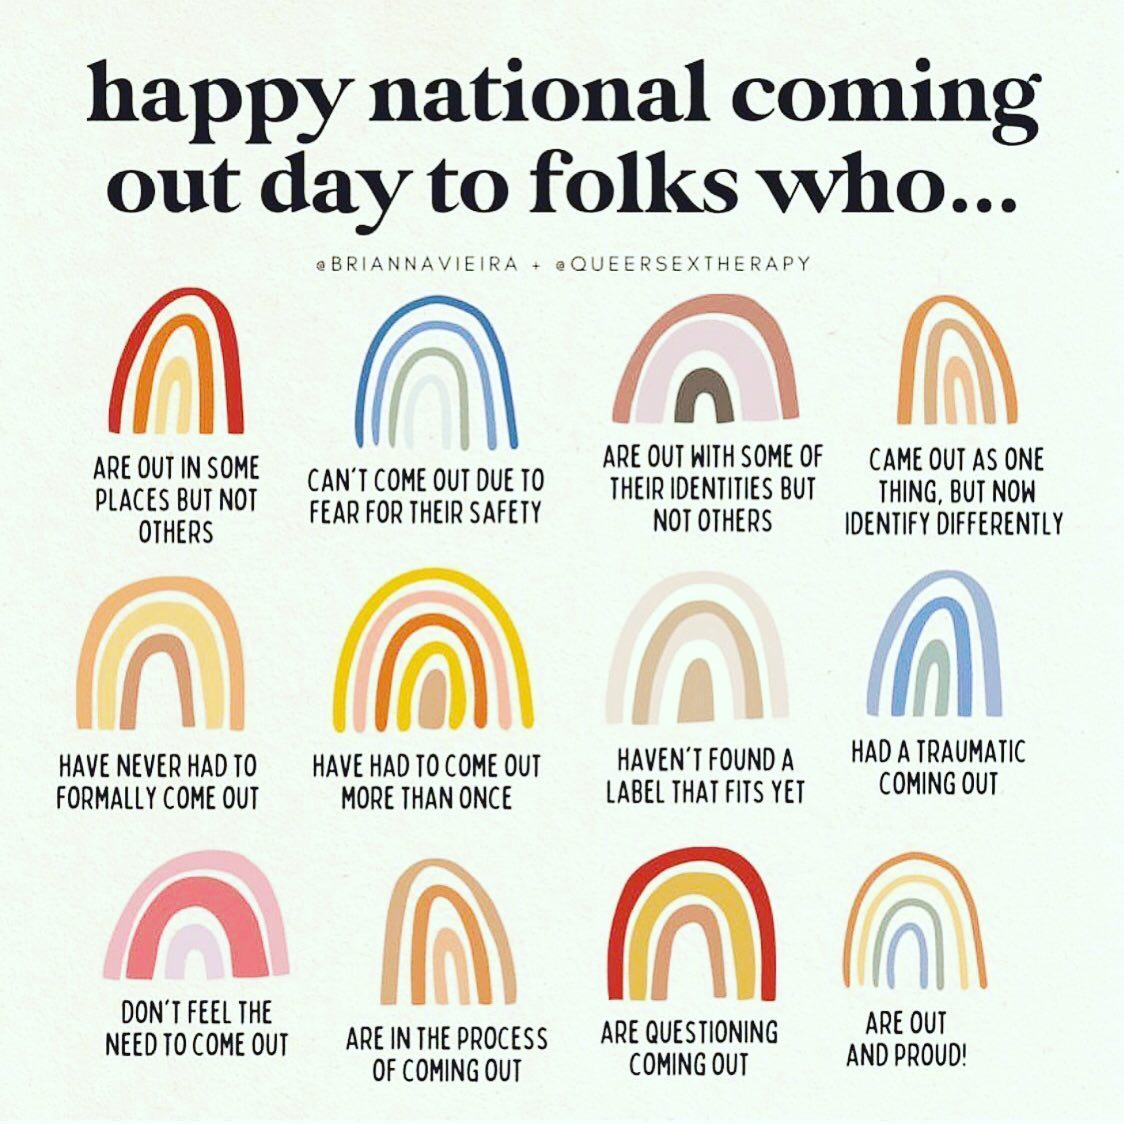 On National Coming Out Day, the only advice I can offer is this: the only person you need to be out to is yourself. Being honest with yourself can be hard work. It can be scary. But in the end it can–and will–save you. It took me years and years to come out to myself, and even longer to come out to anyone else. Even after I started figuring things out, there were many times I backpedaled because of my religious upbringing and self-loathing. Eventually I learned to see that for what it was, and love that part of what makes me, well, me. We all take different paths. Love yourself, and just be the you that you need to be. #ComingOutDay #ComingOutDay2021